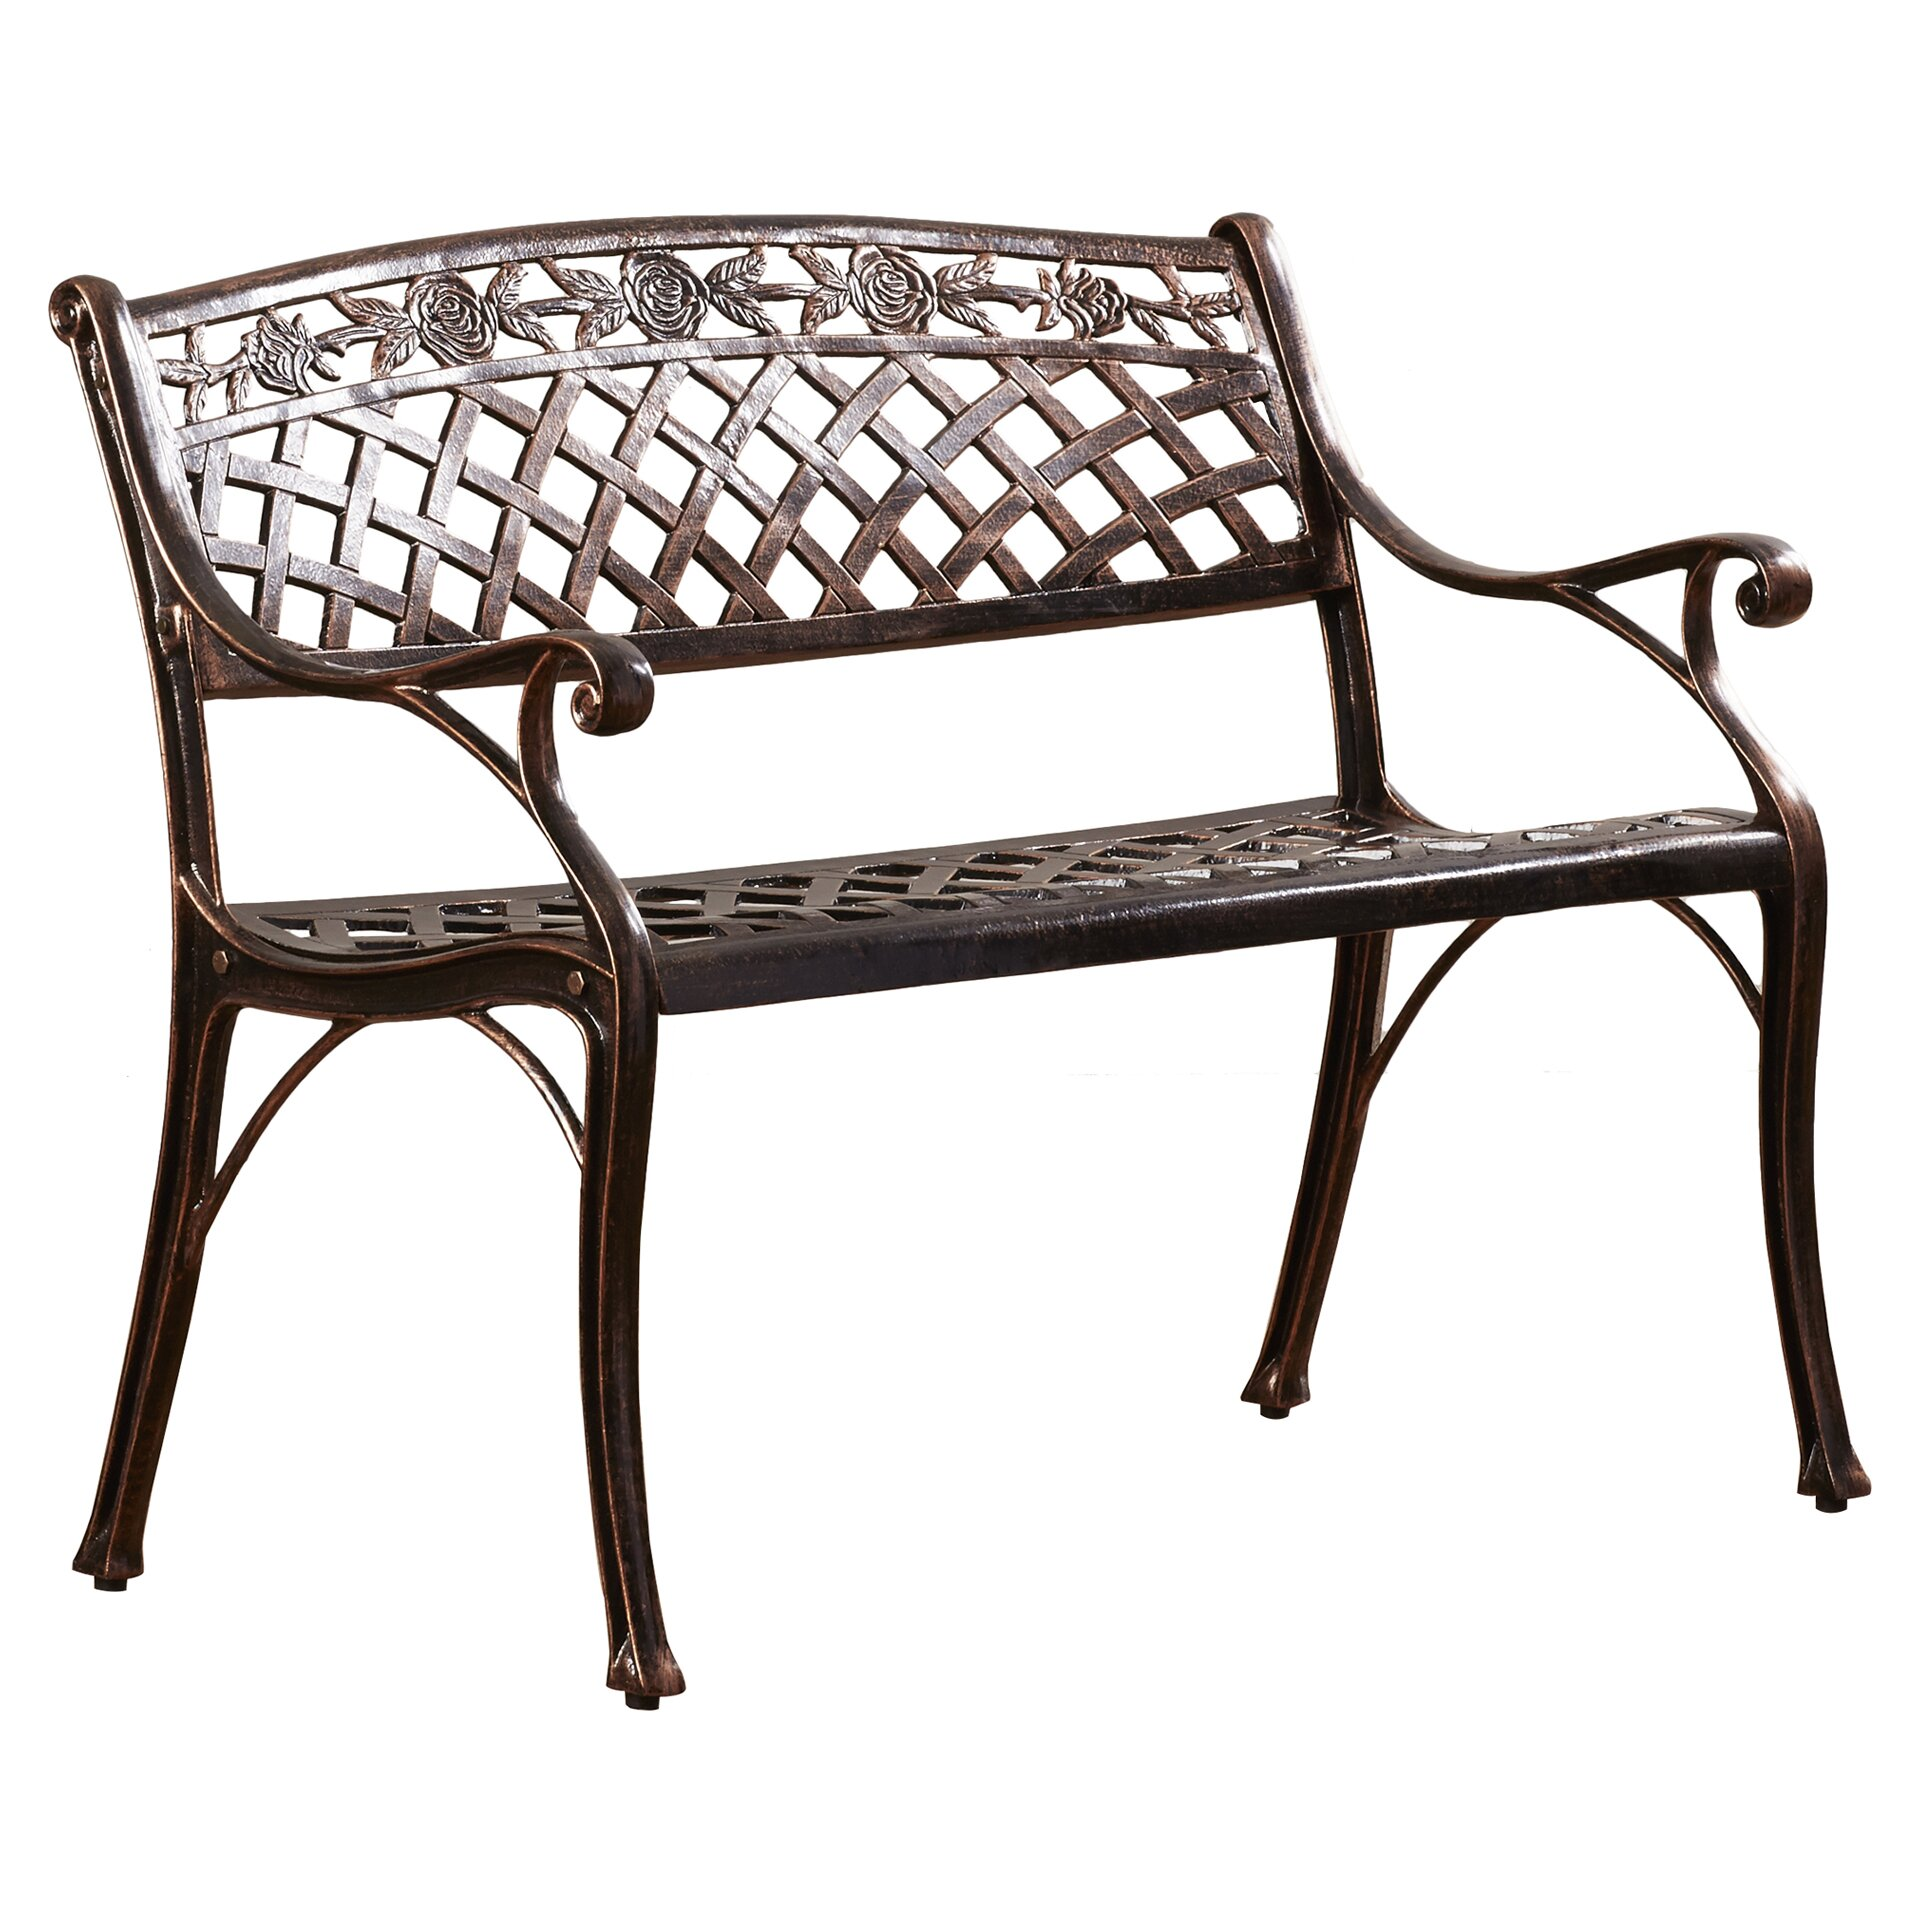 Alcott Hill Closson Cast Aluminum Garden Bench Reviews Wayfair